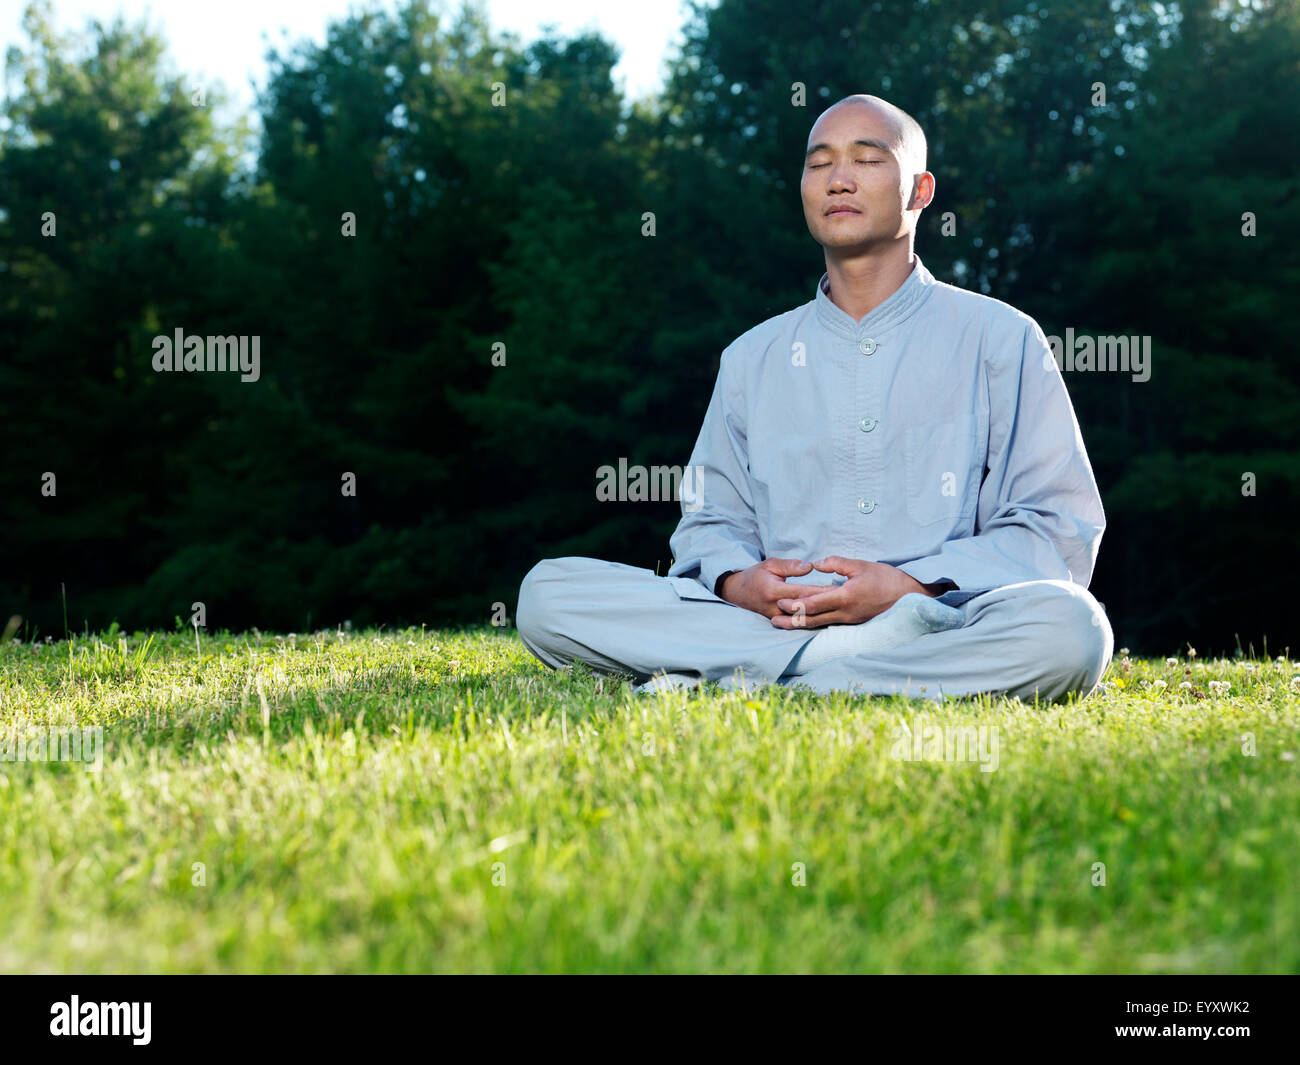 Shaolin monk meditating outdoors during sunrise sitting on green grass - Stock Image